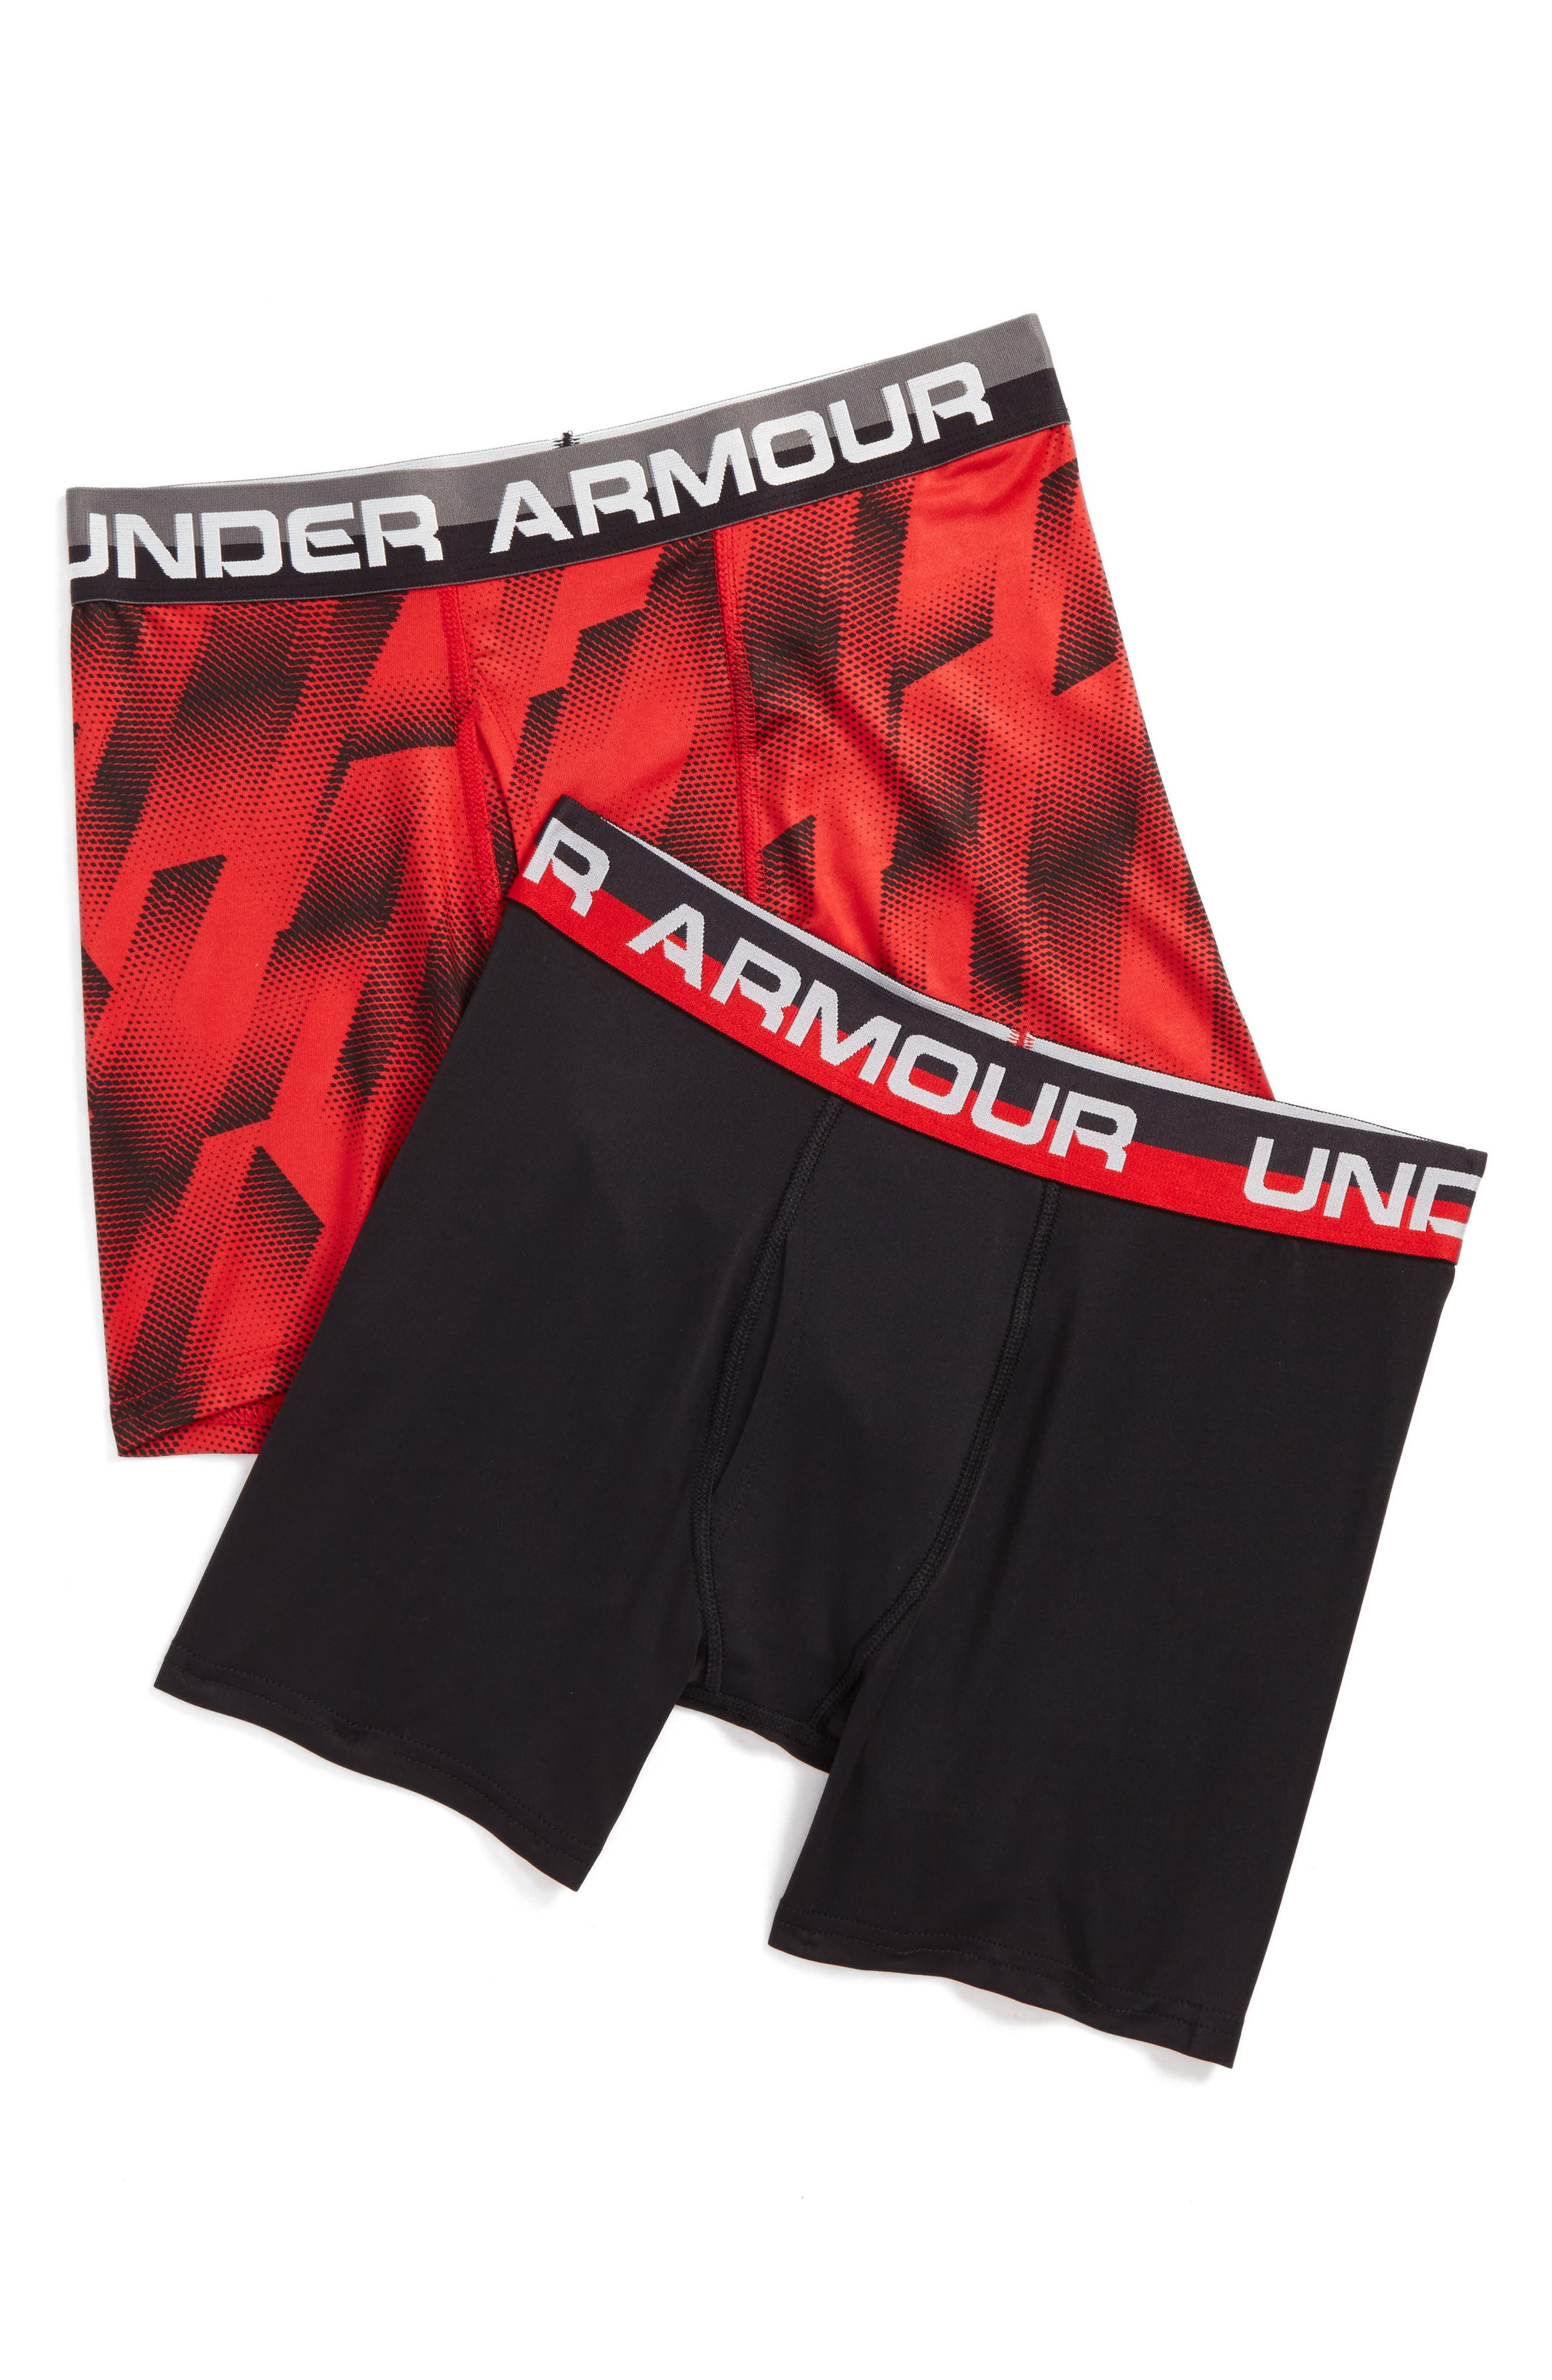 Alternate Image 1 Selected - Under Armour Sandstorm 2-Pack Boxerjock™ Boxer Briefs (Big Boys)